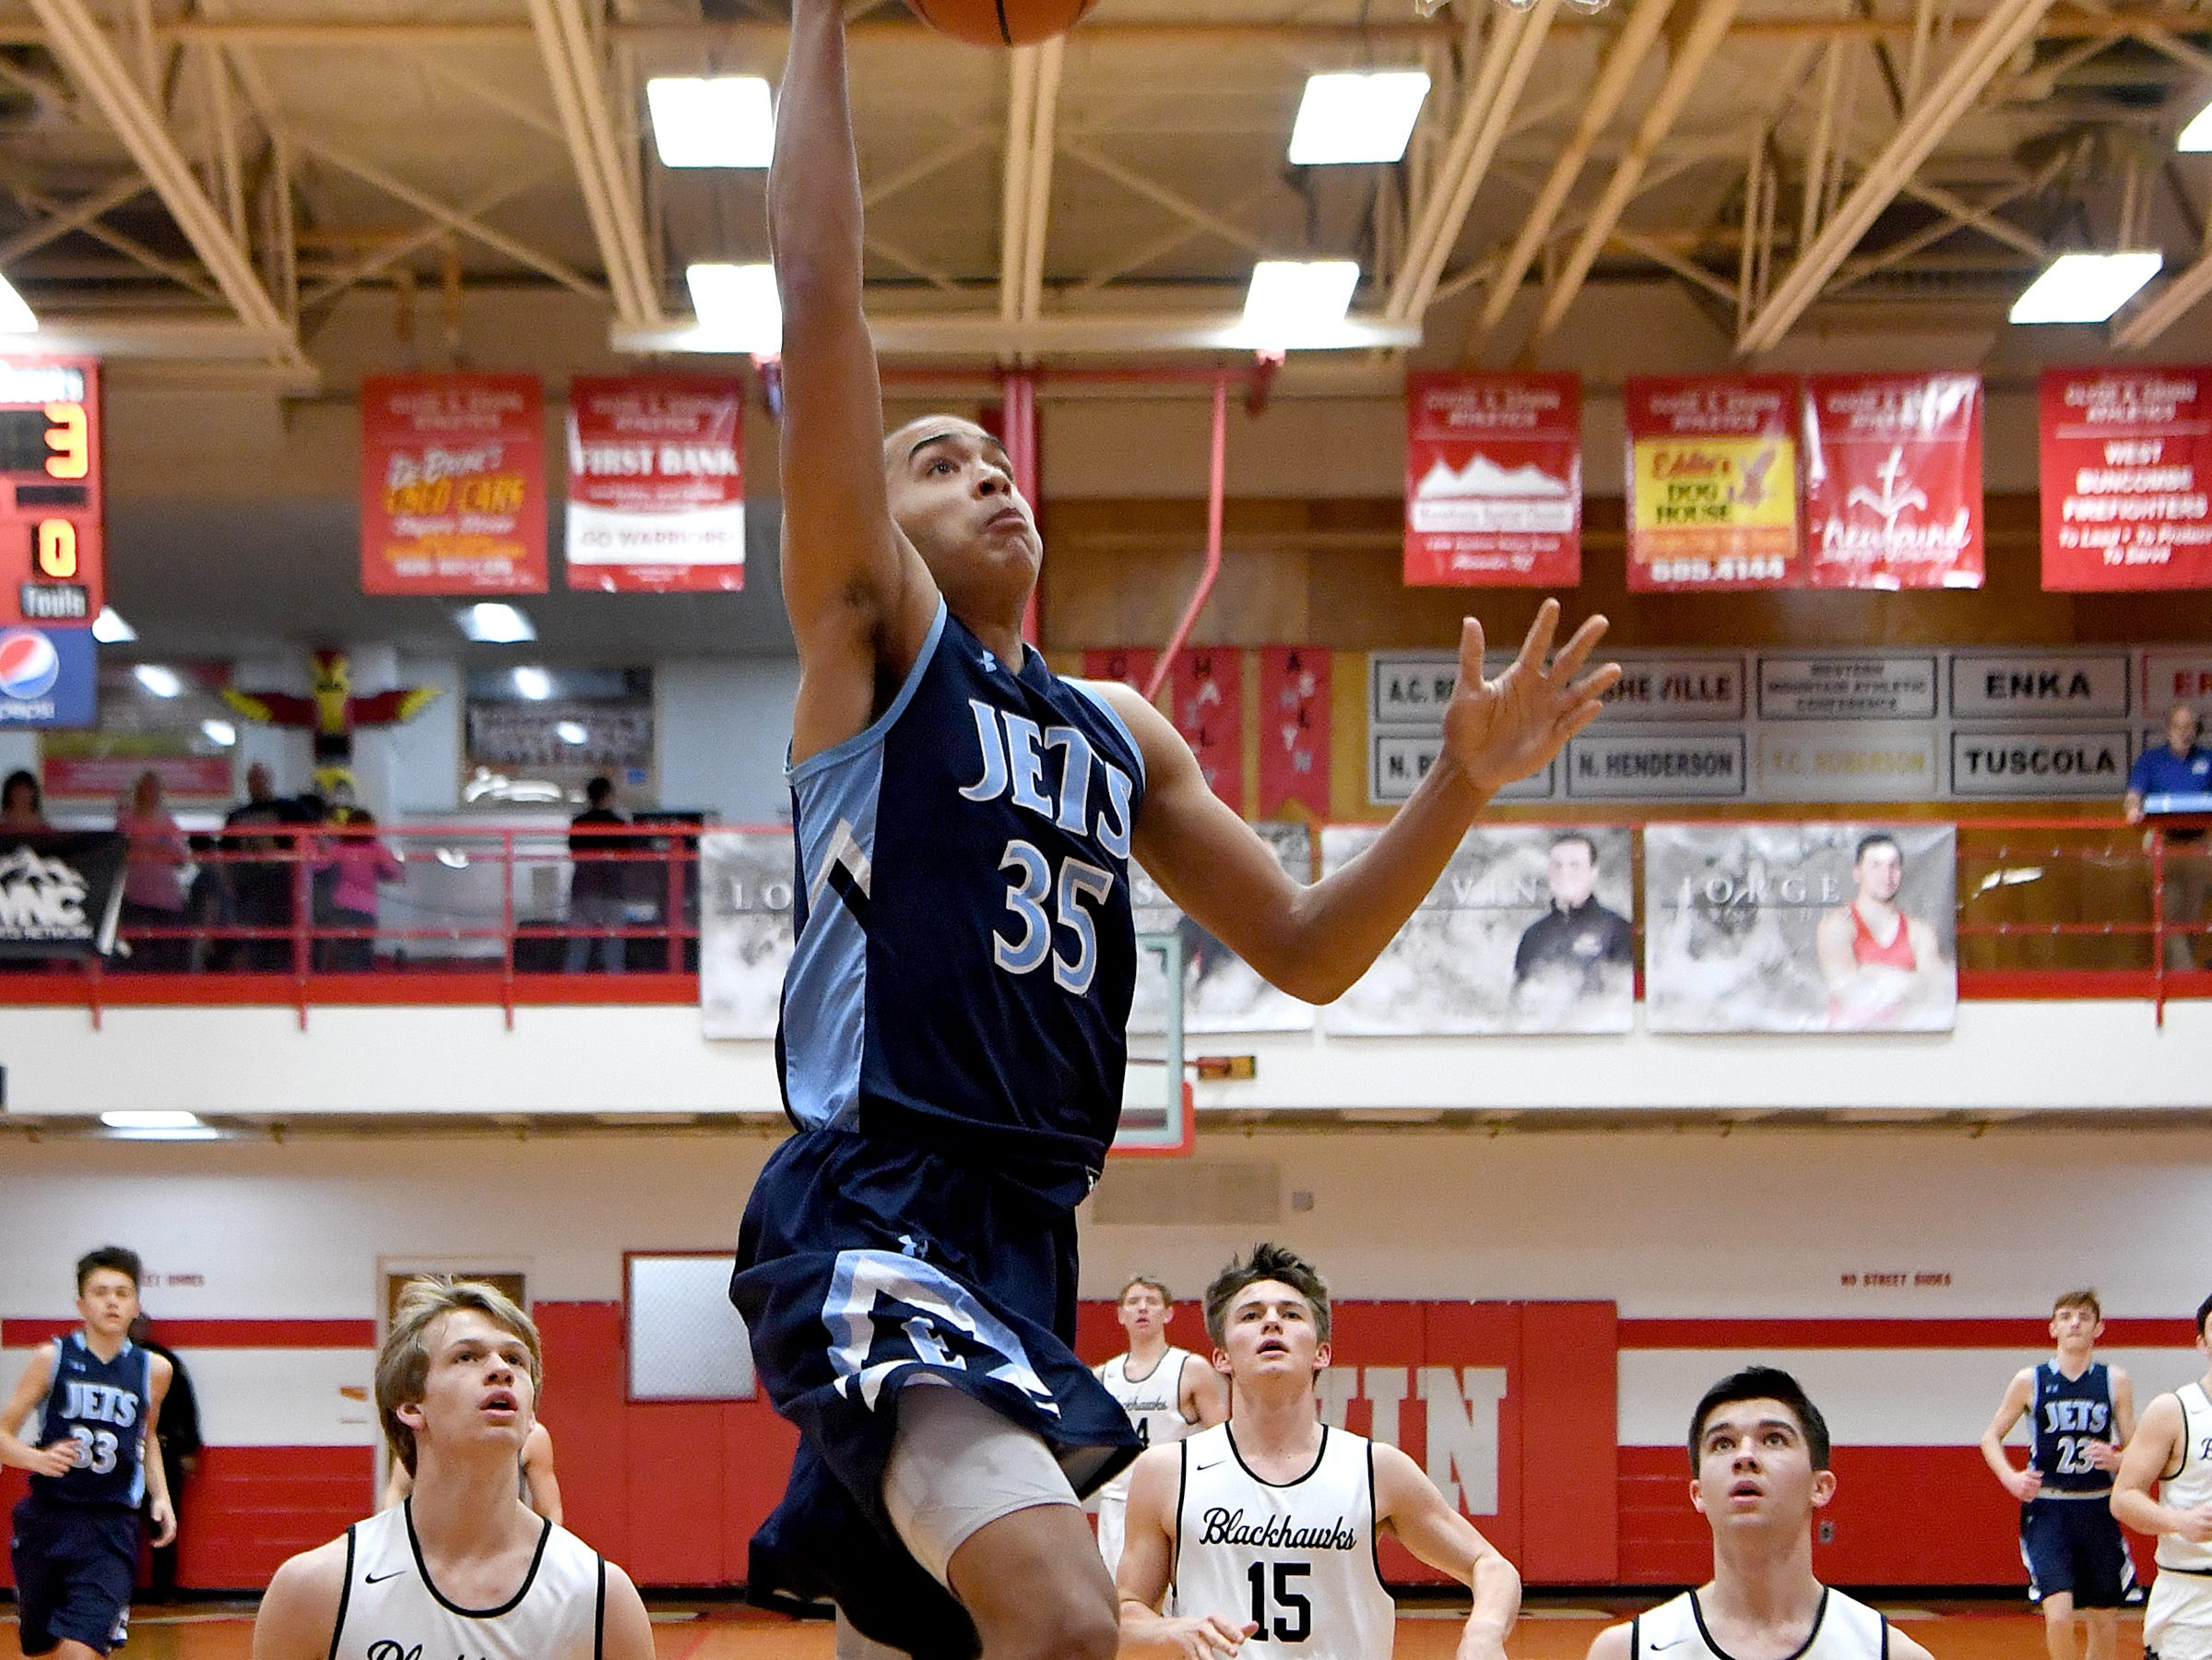 Enka's Joshua Walton goes up for a shot against North Buncombe during the semi-final round of the WMAC tournament at Erwin High School on Wednesday, Feb. 14, 2018.